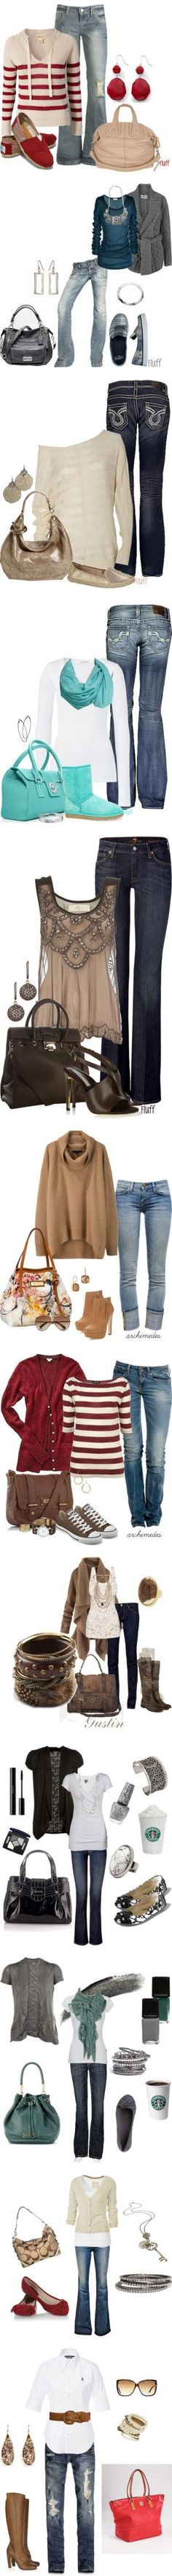 Whoa. A ton of cute outfit ideas for fall/winter.